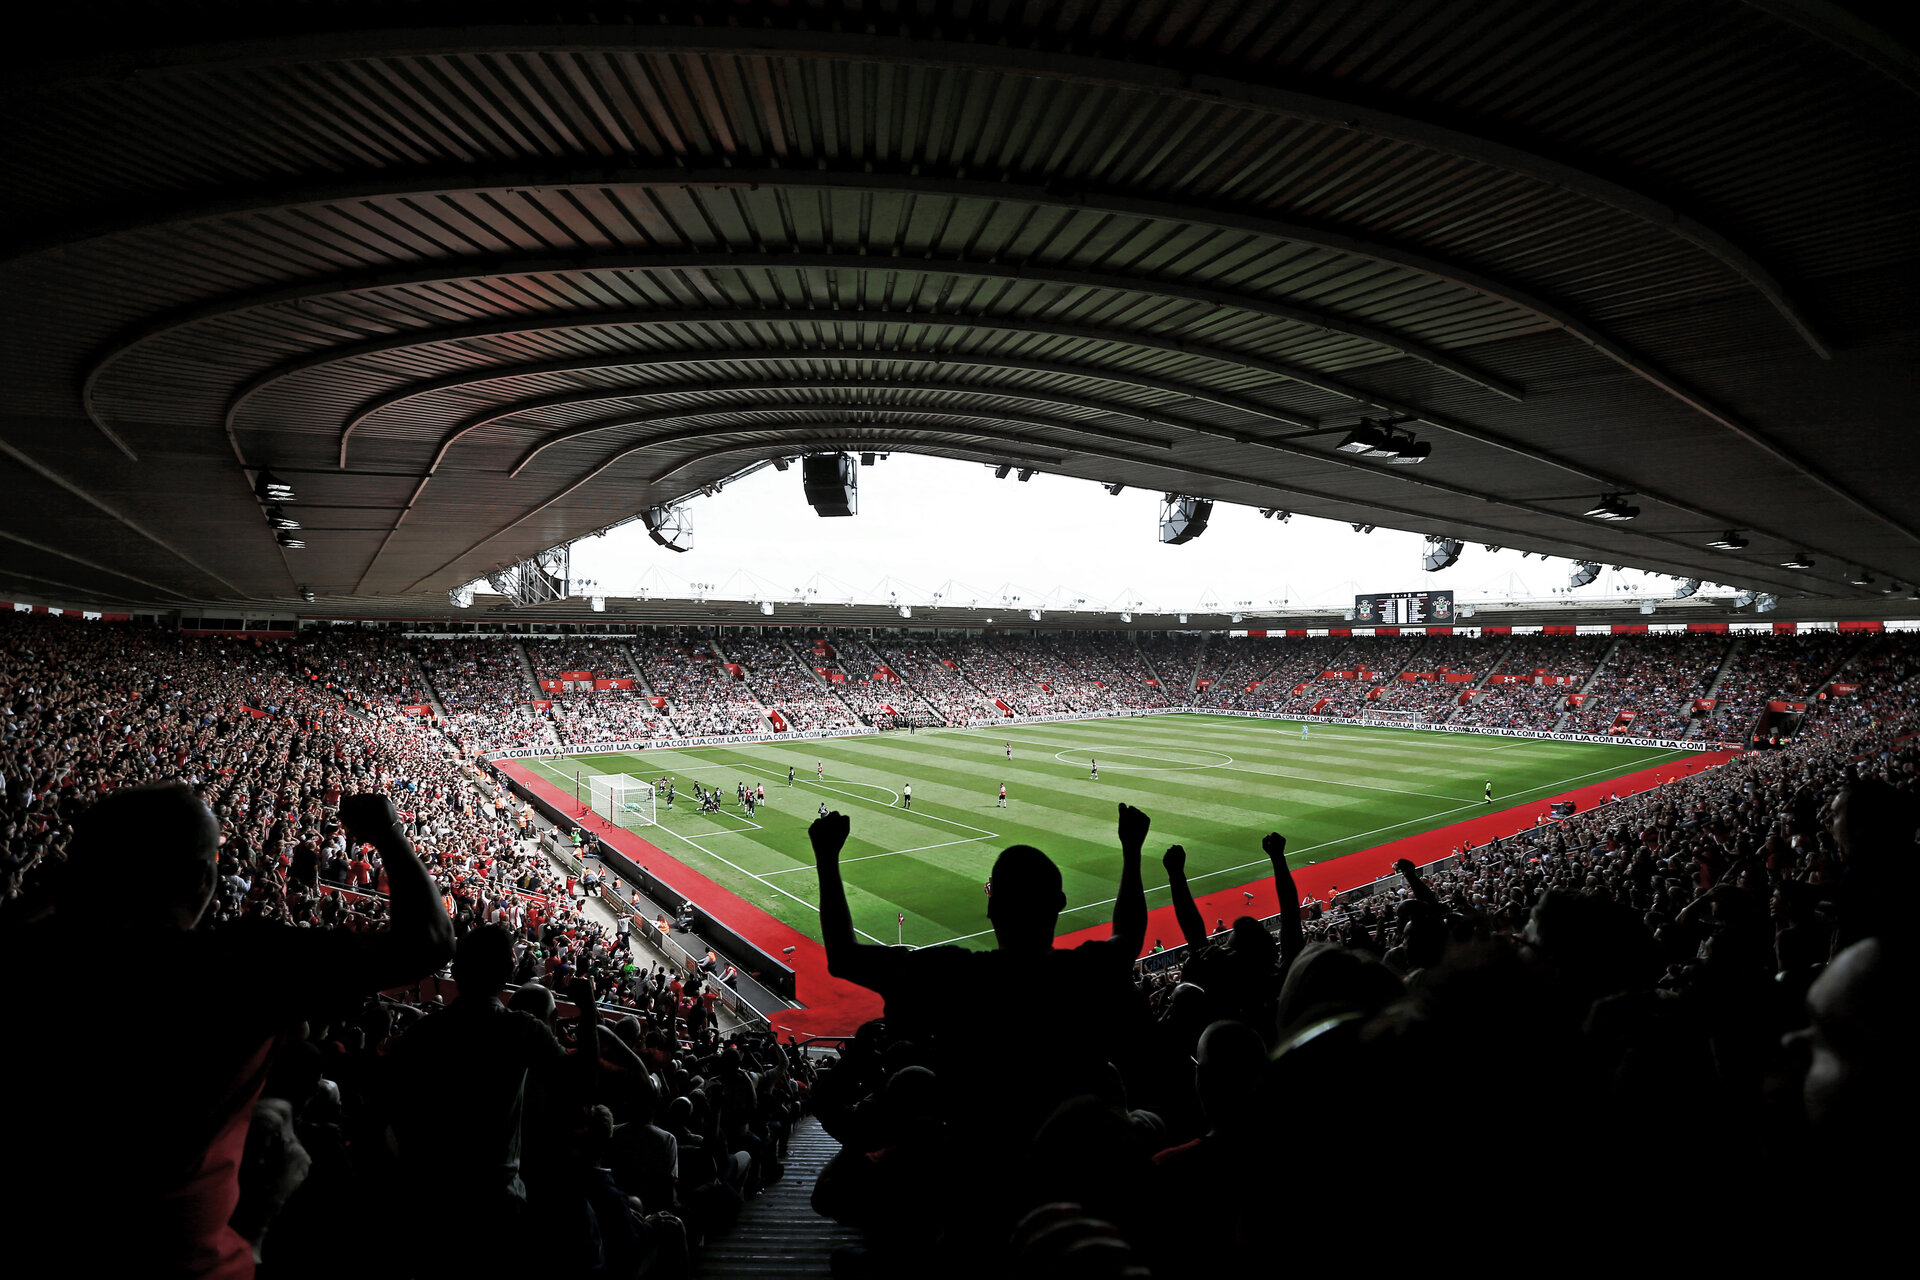 SOUTHAMPTON, ENGLAND - AUGUST 17: General View during the Premier League match between Southampton FC and Liverpool FC at St Mary's Stadium on August 17, 2019 in Southampton, United Kingdom. (Photo by James Bridle - Southampton FC/Southampton FC via Getty Images)